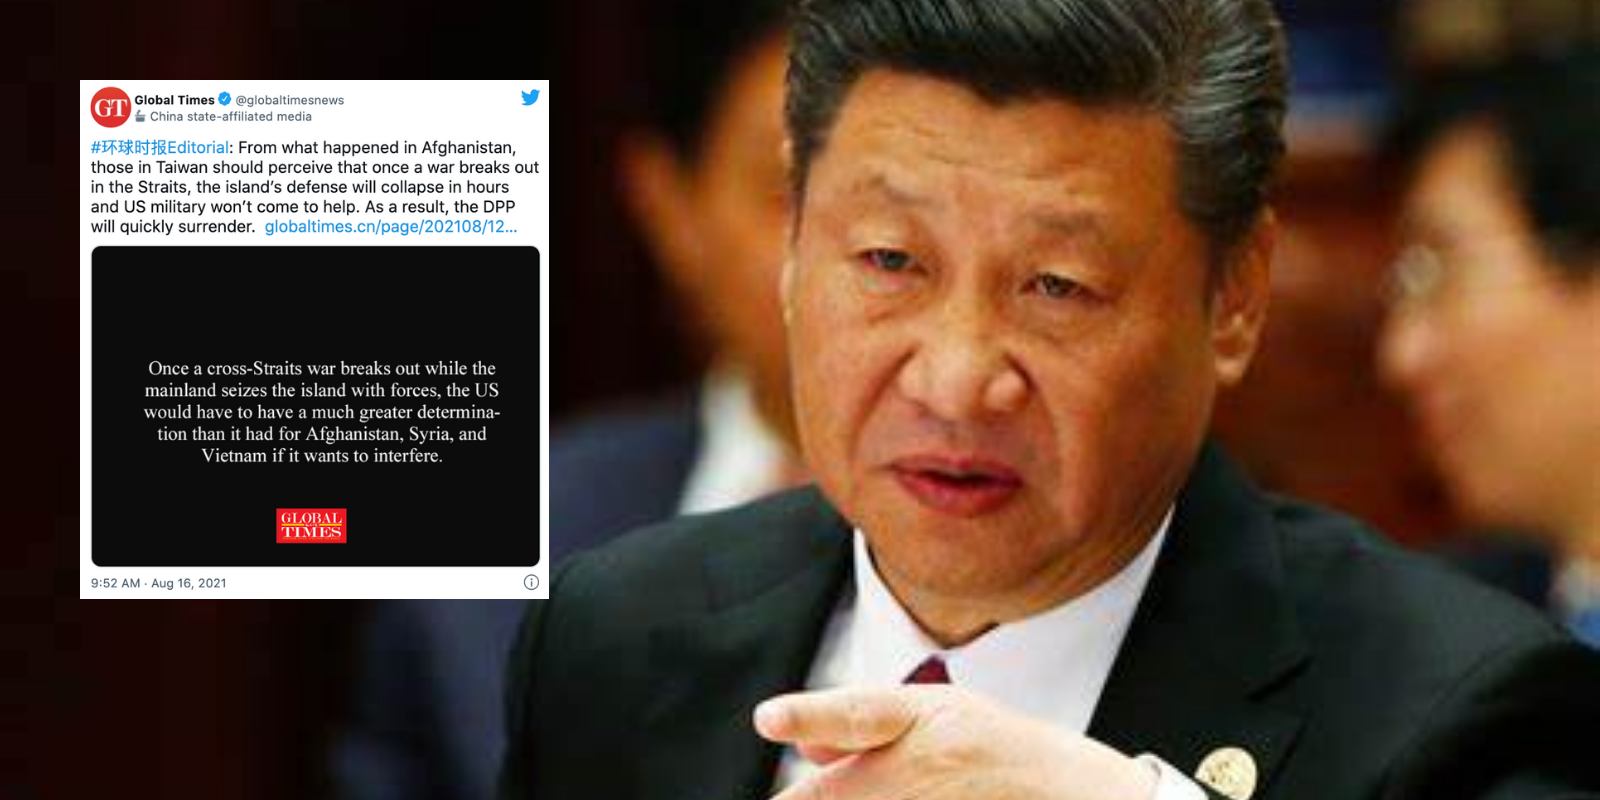 Chinese state media uses Afghanistan disaster to justify takeover of Taiwan